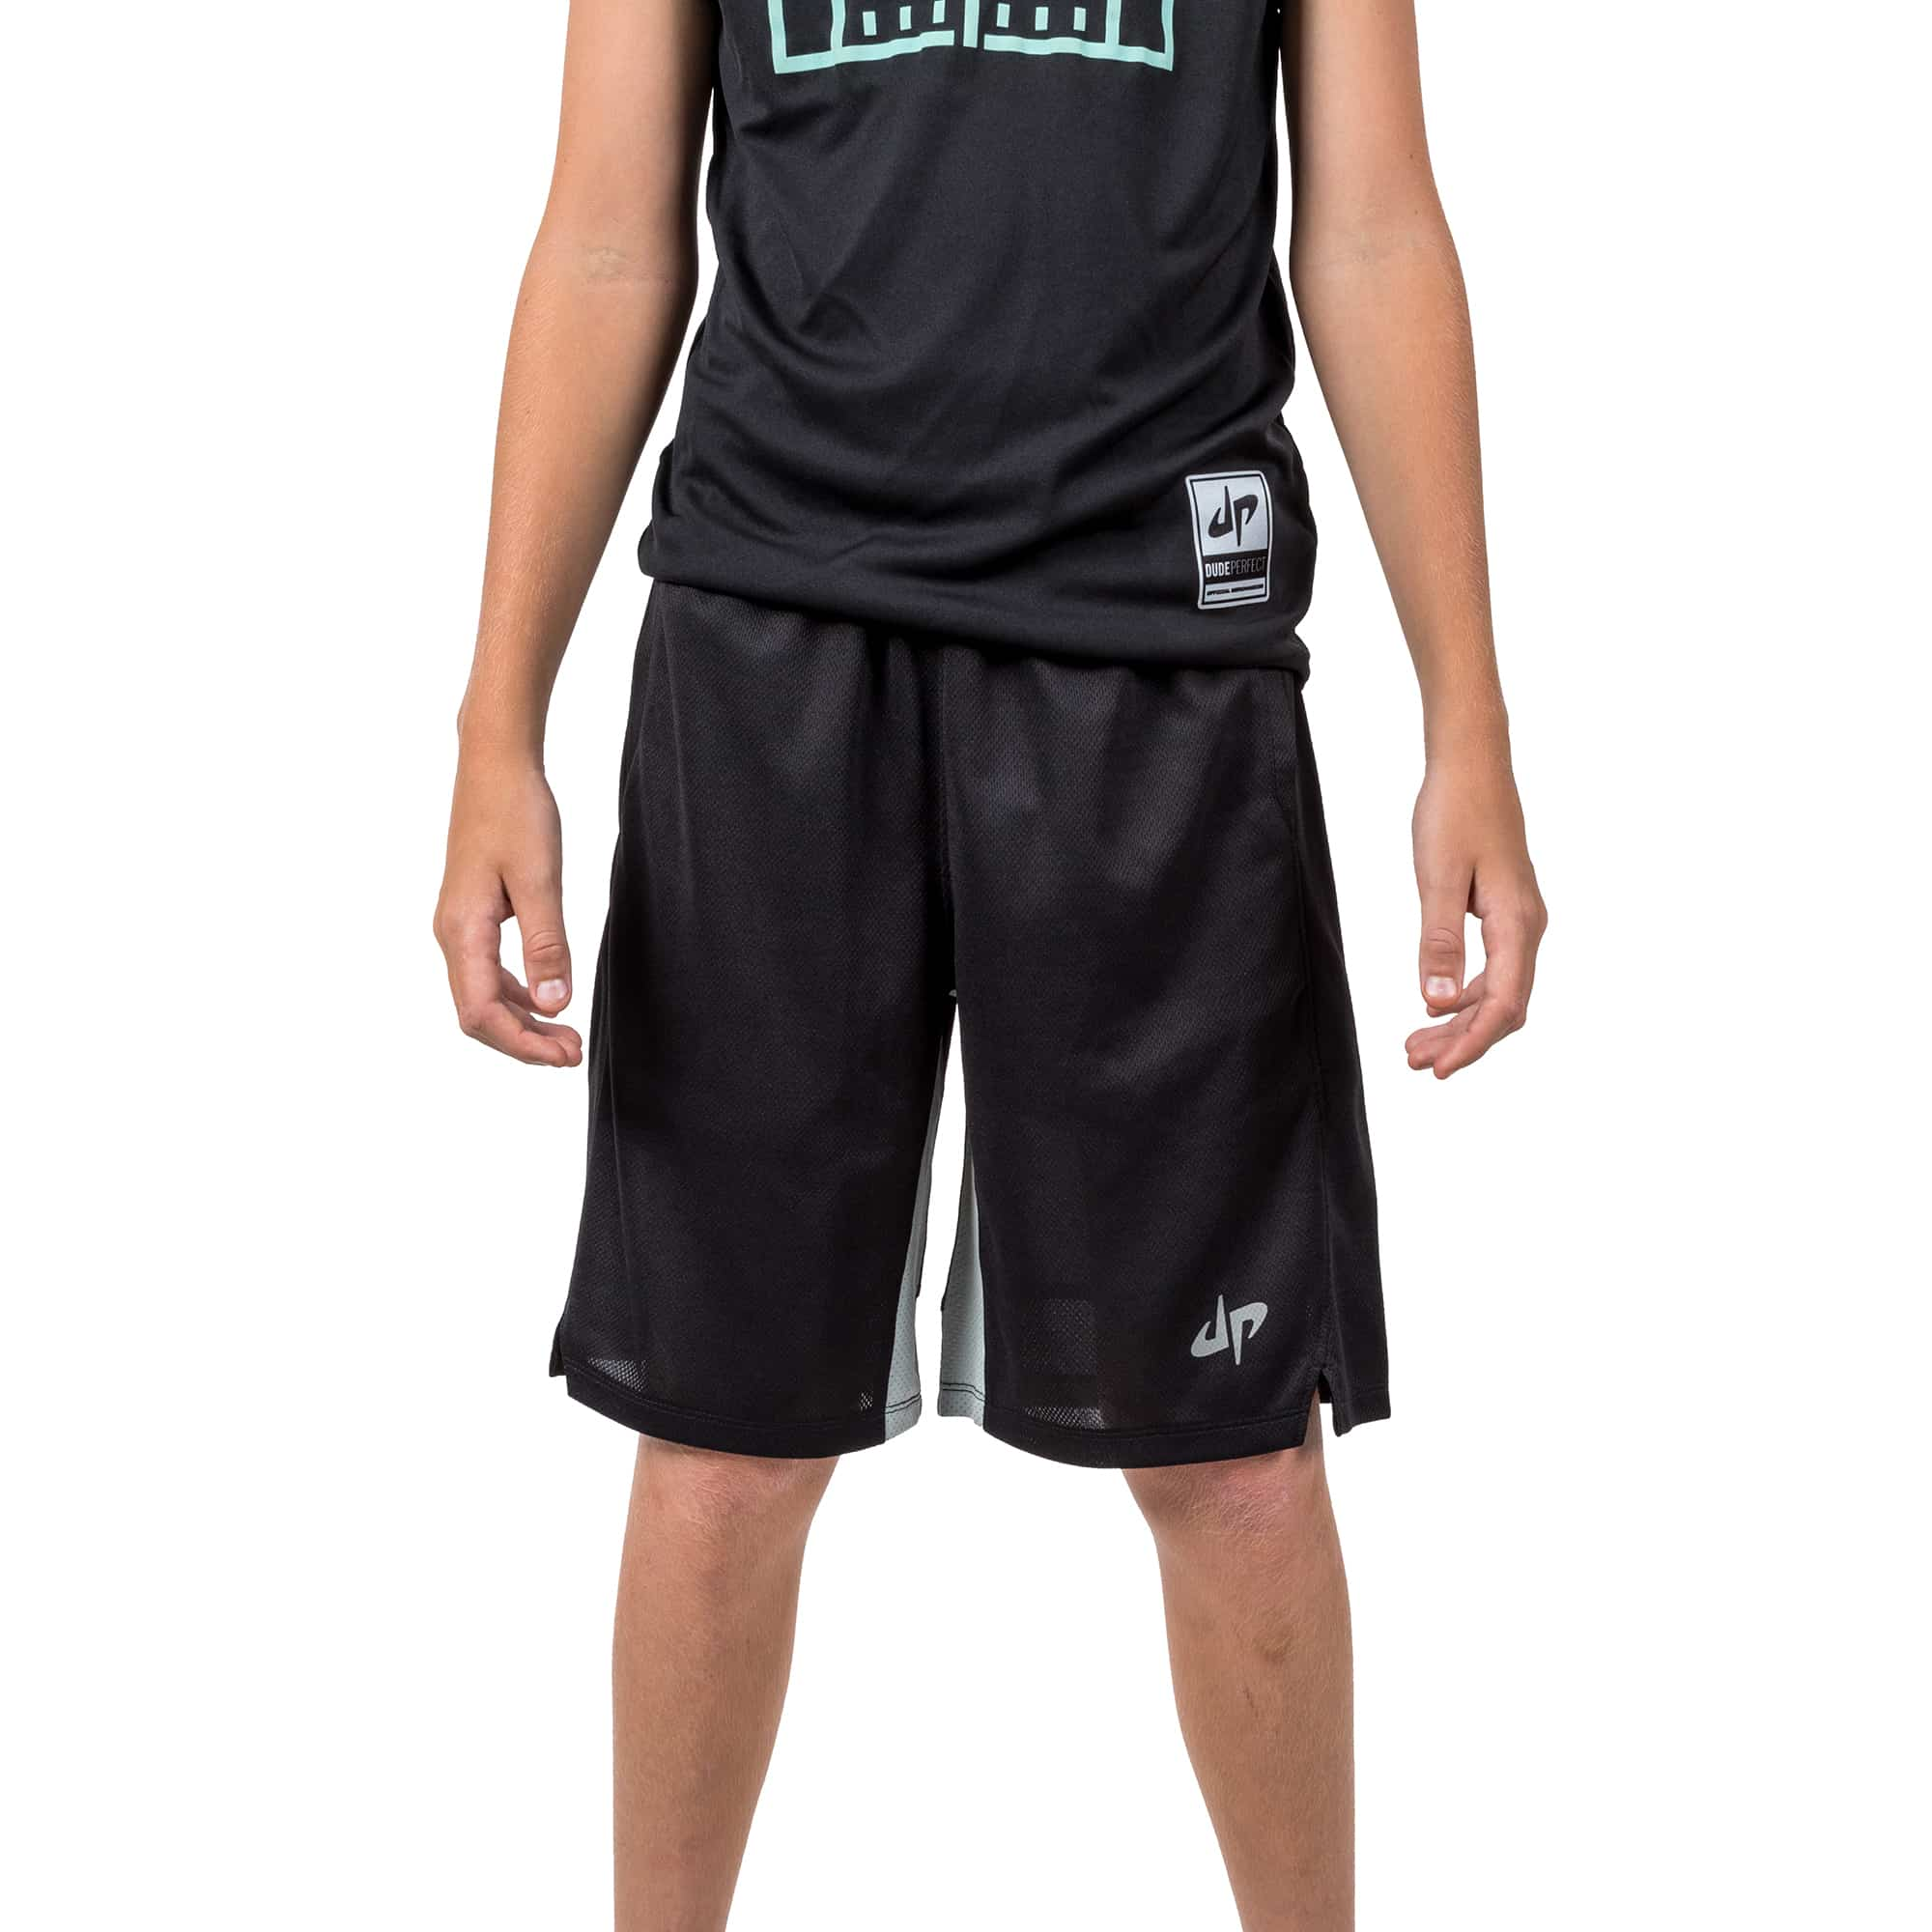 Youth Baller Basketball Short